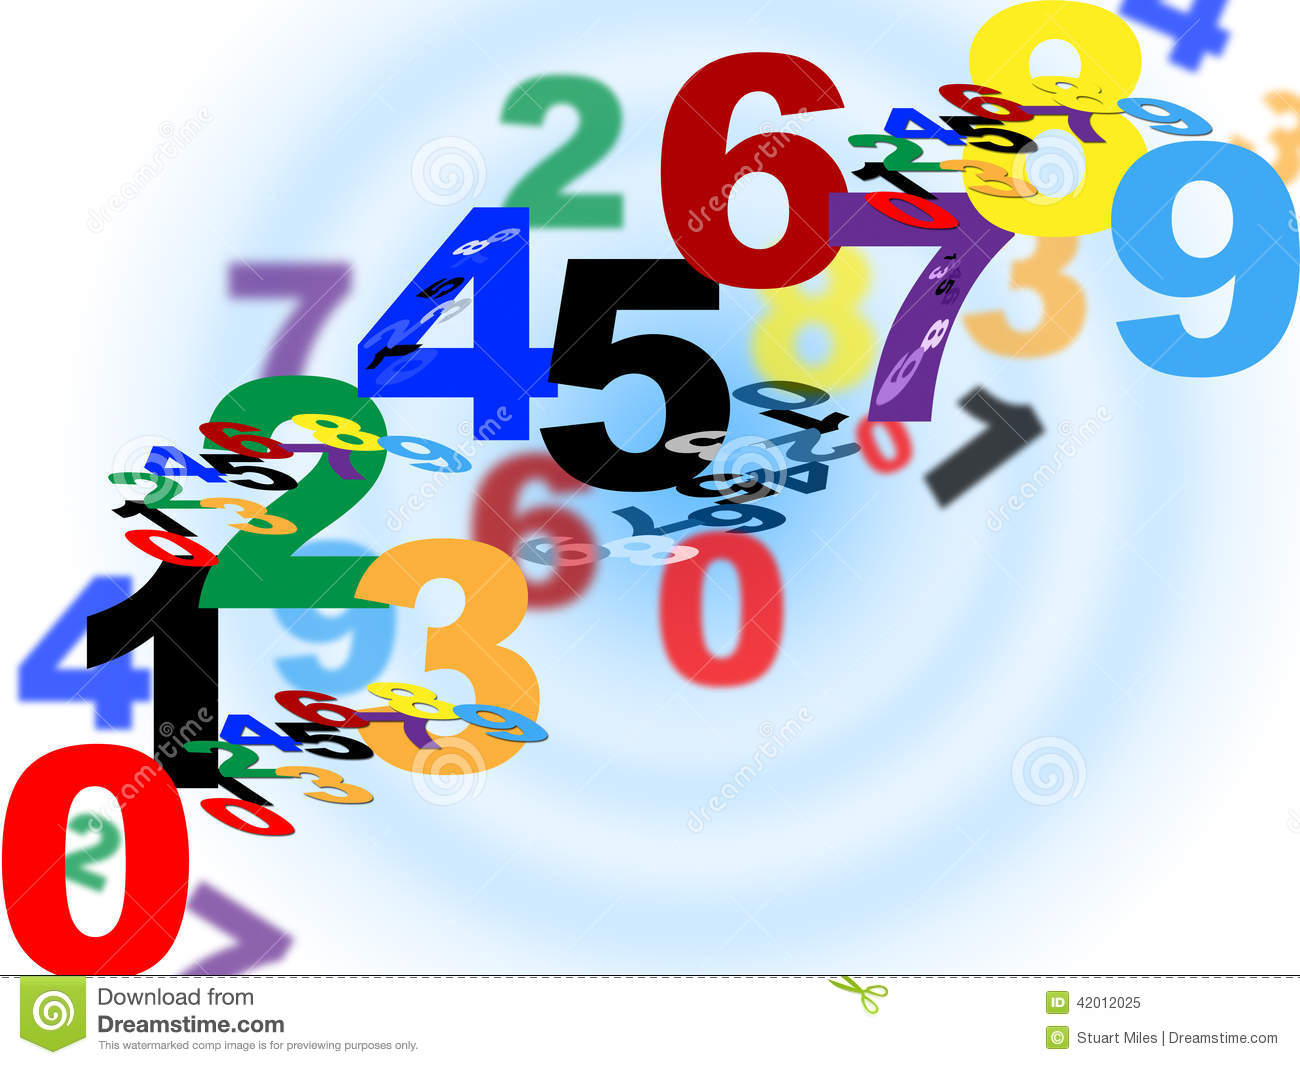 Maths Counting Means Numerical Number And Template Stock.